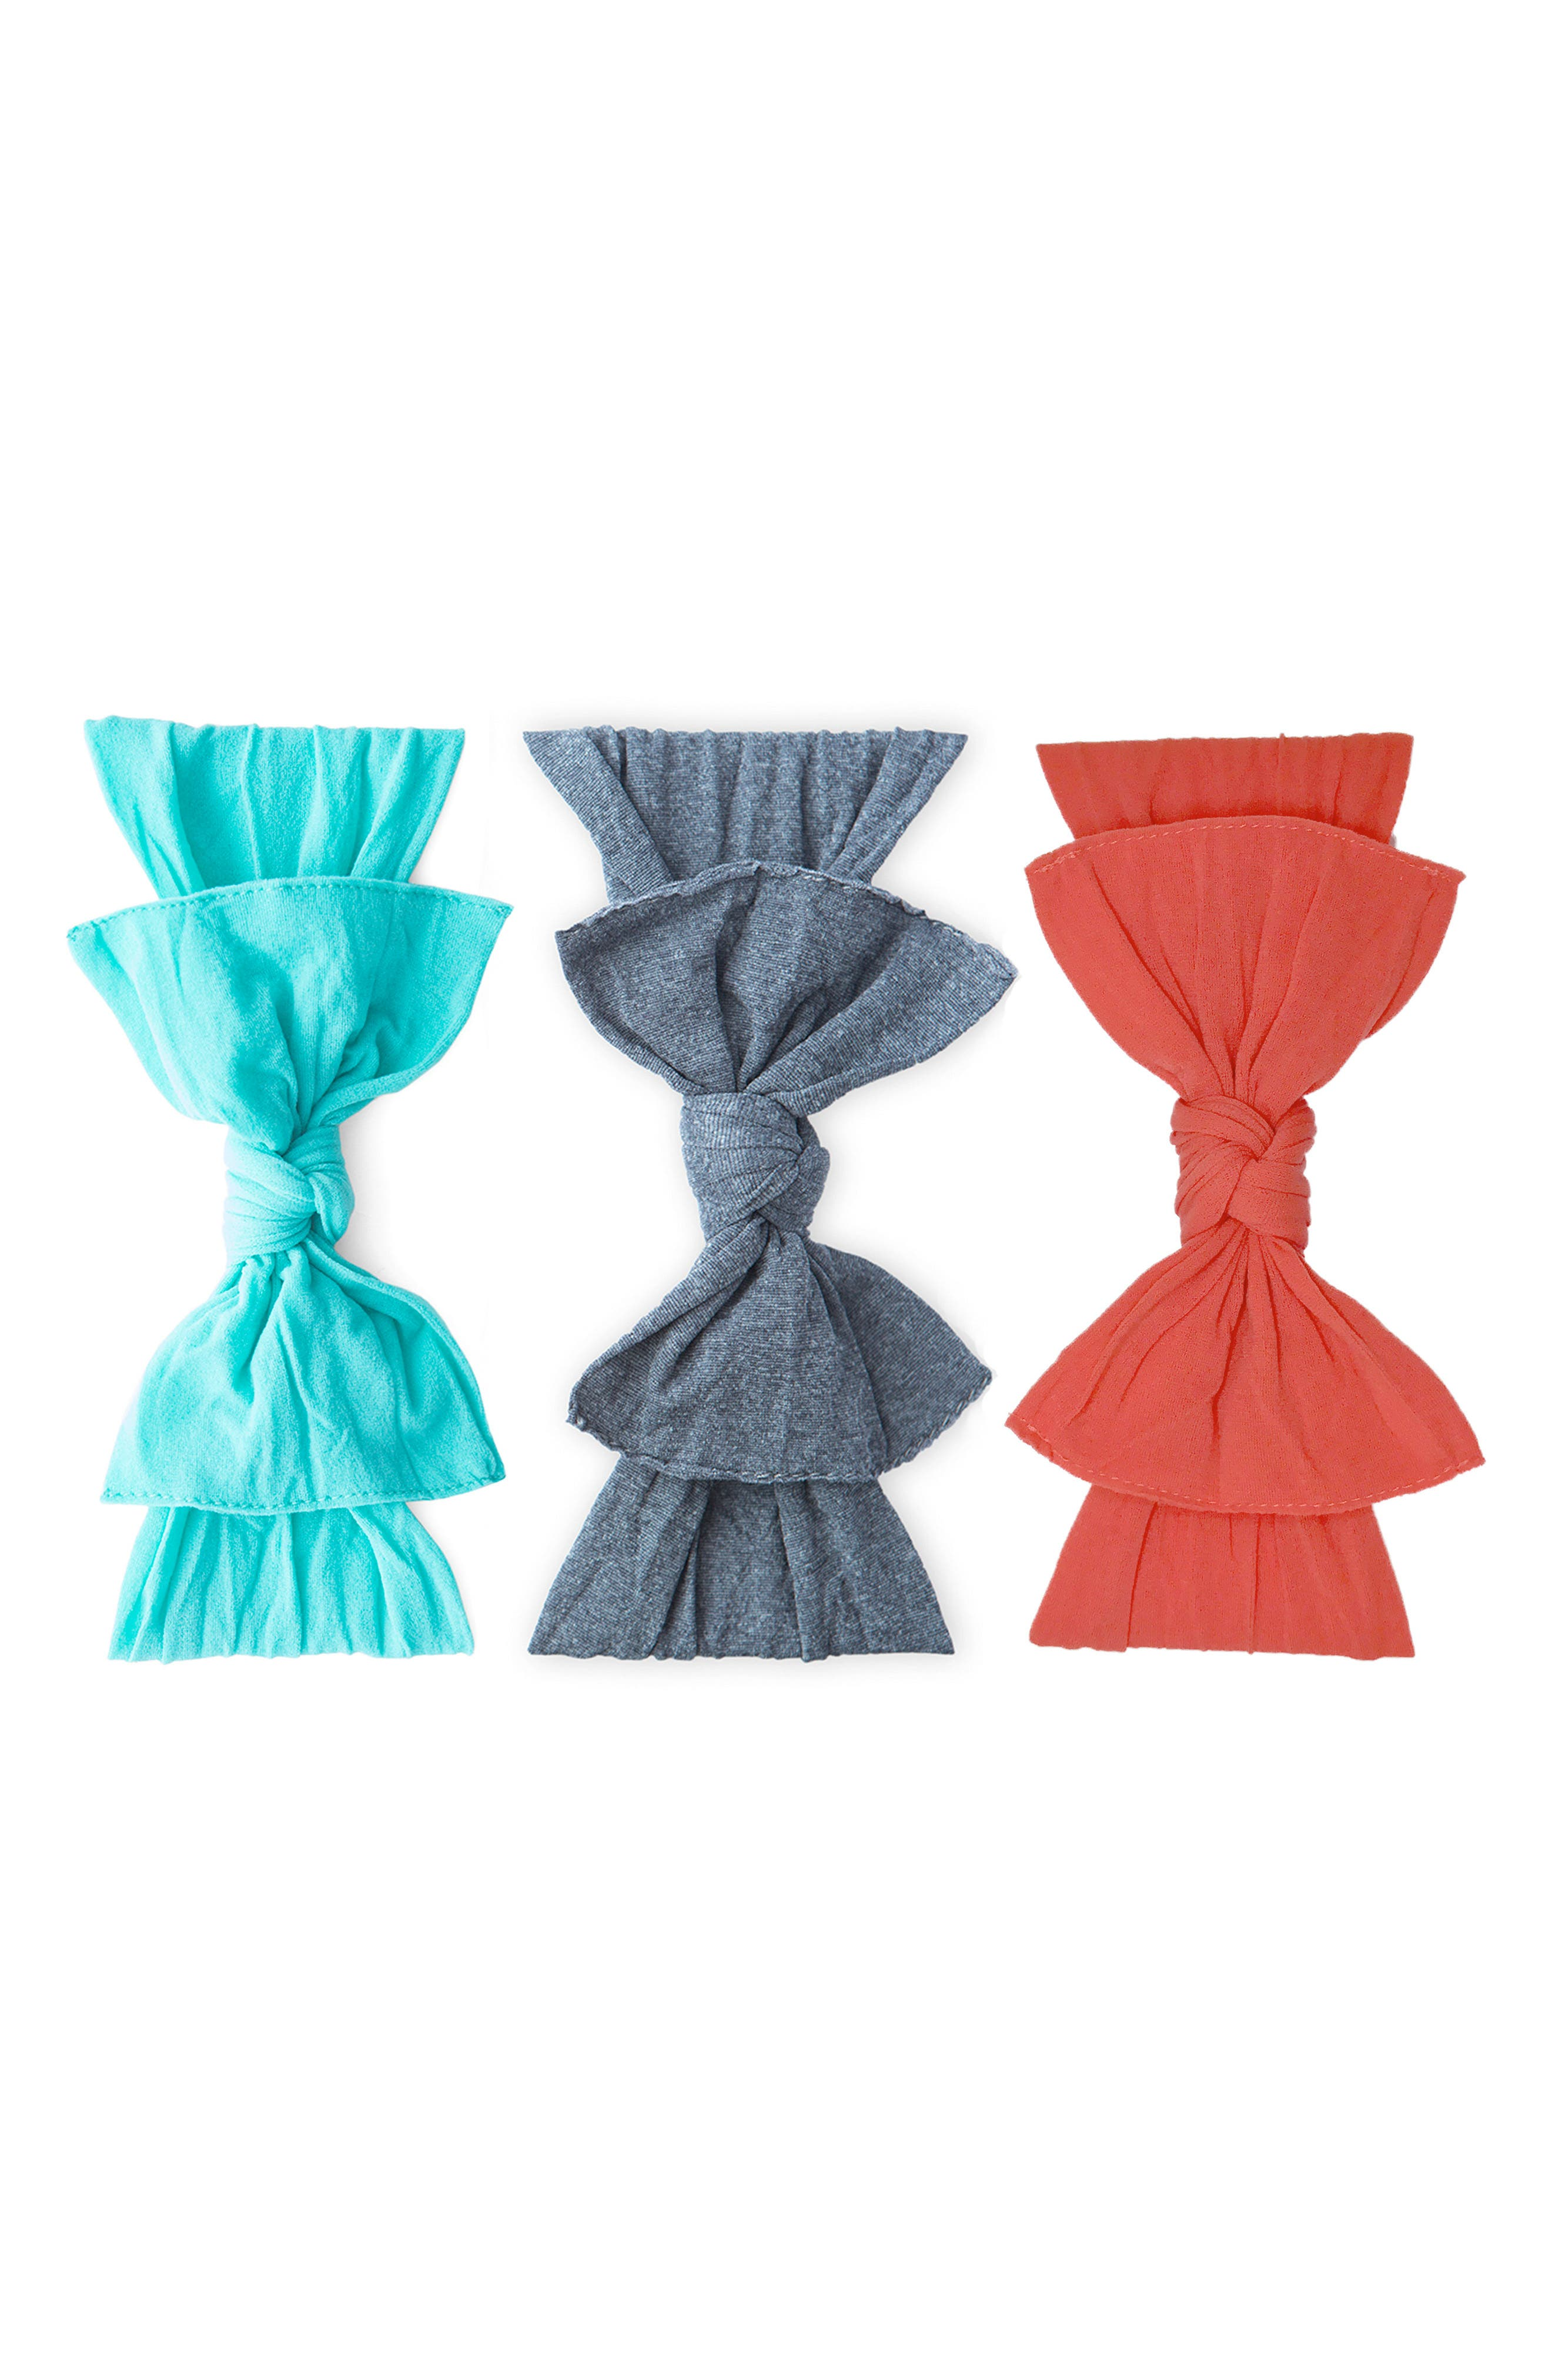 3-Pack Knotted Headbands,                         Main,                         color, Turquoise/ Heather Char